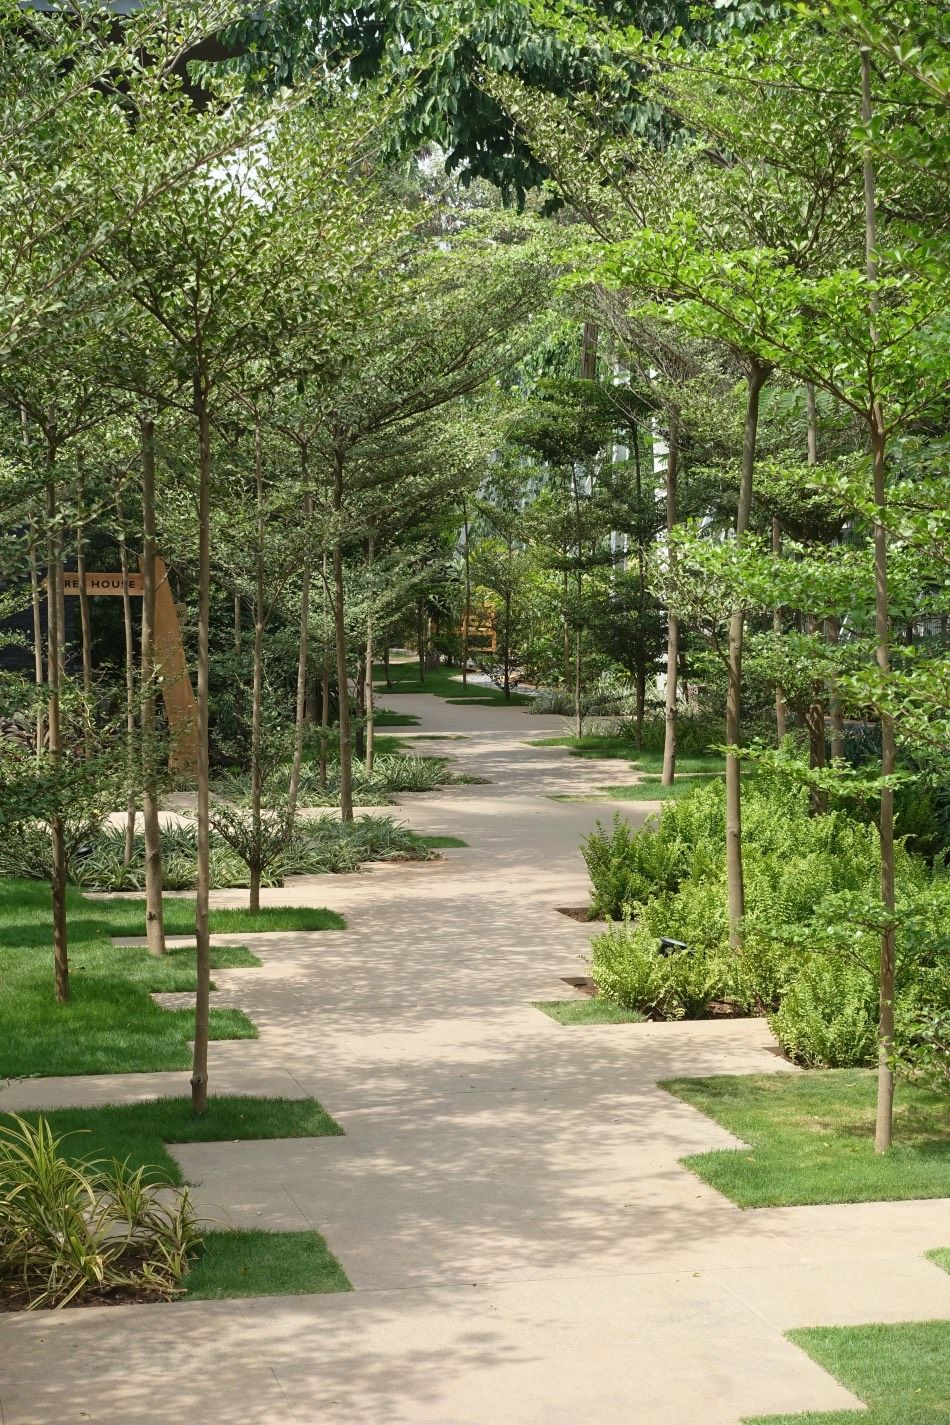 Pin By Jacinto Becquer On Urbe Landscape Architecture Design Urban Landscape Design Landscape Design